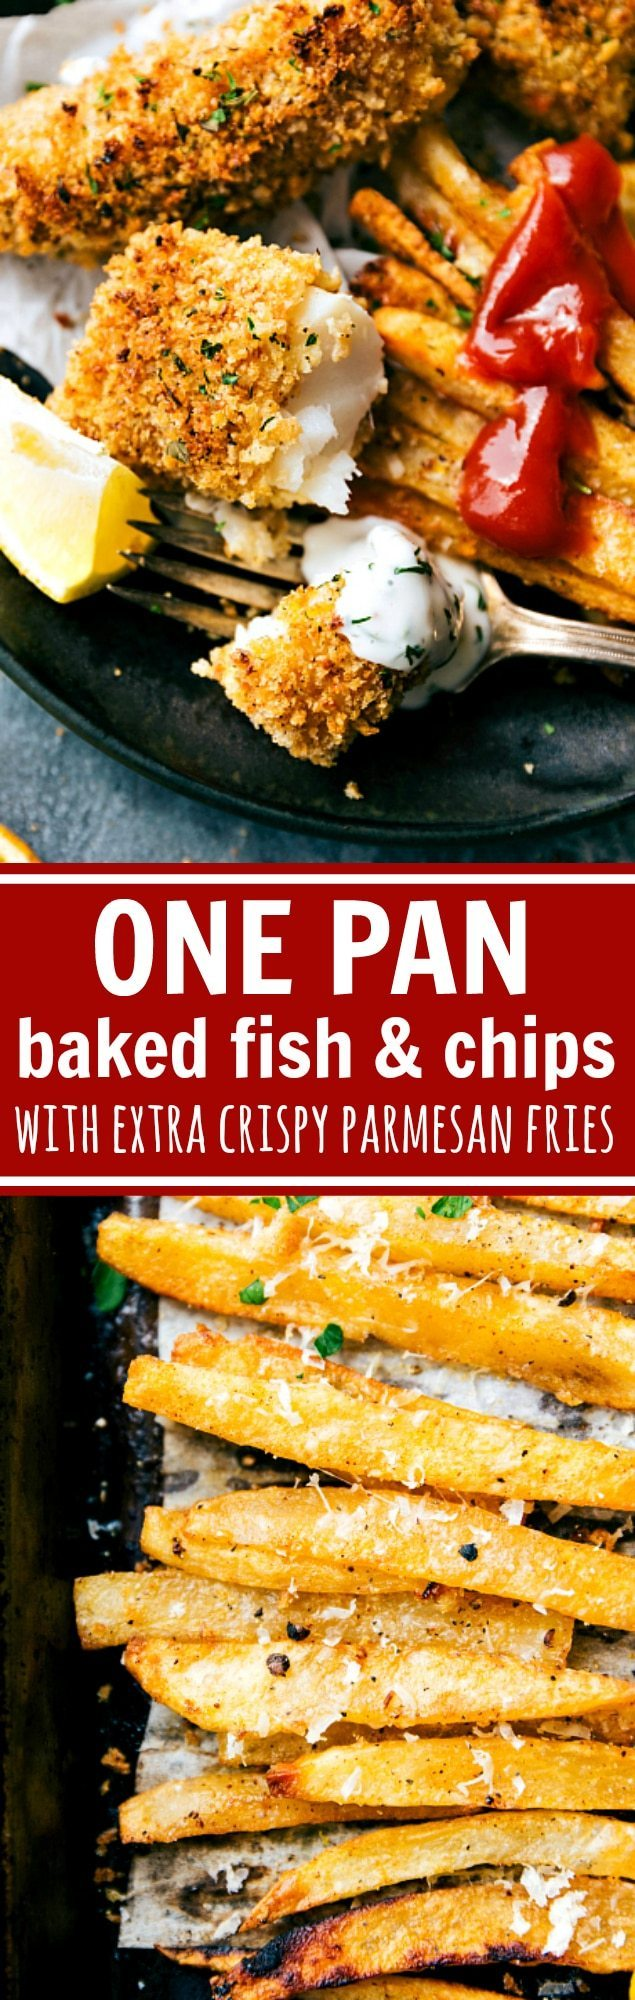 One Pan Easy Baked Fish And Chips Chelseas Messy Apron Mothers Corn Enjoy Fishing Twin Bowl A Quick Delicious Take On All Just